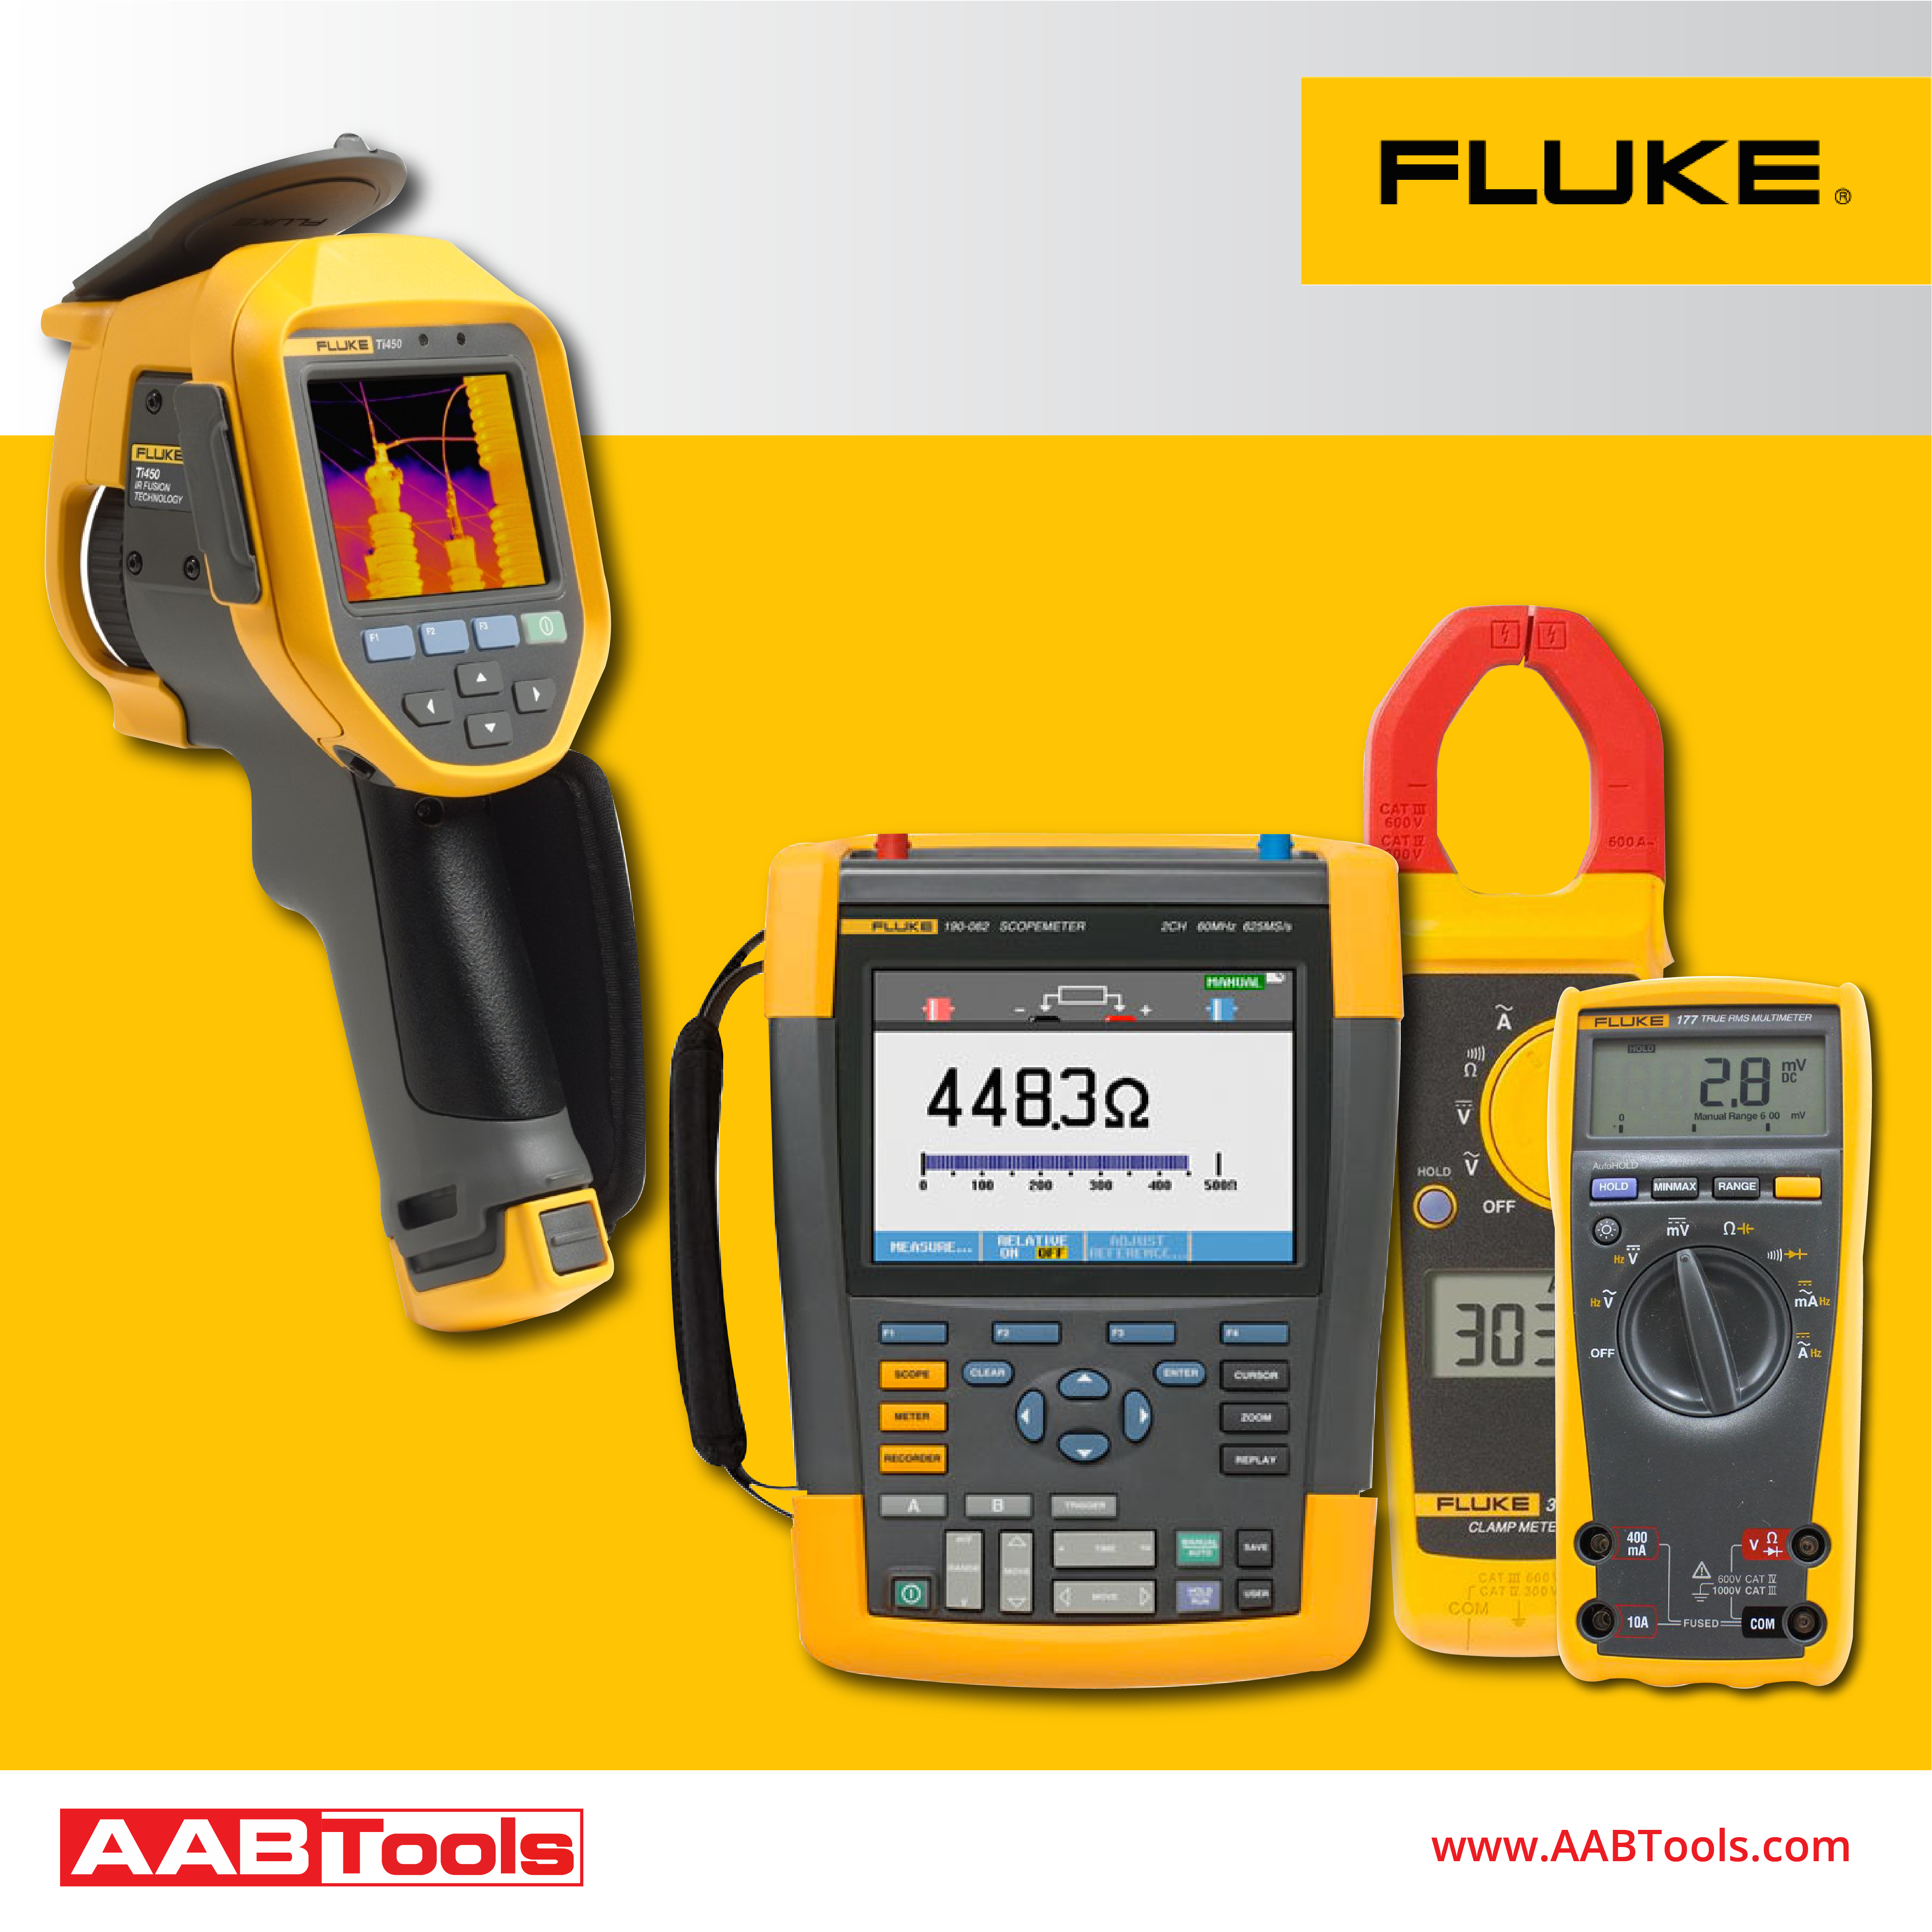 Fluke Has Empowered The Manufacturing And Service